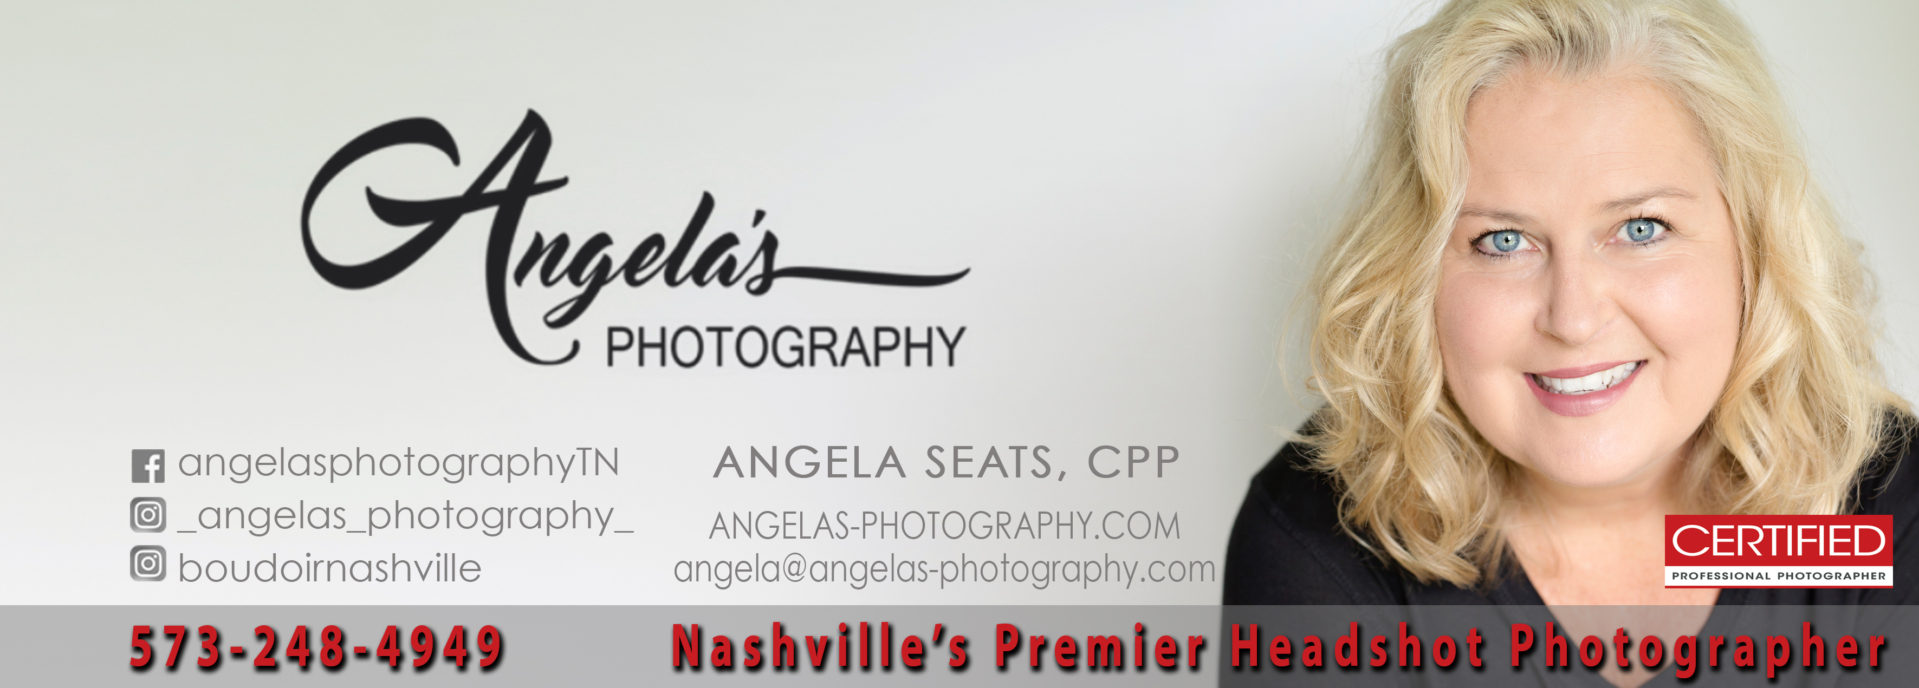 Angela's photography